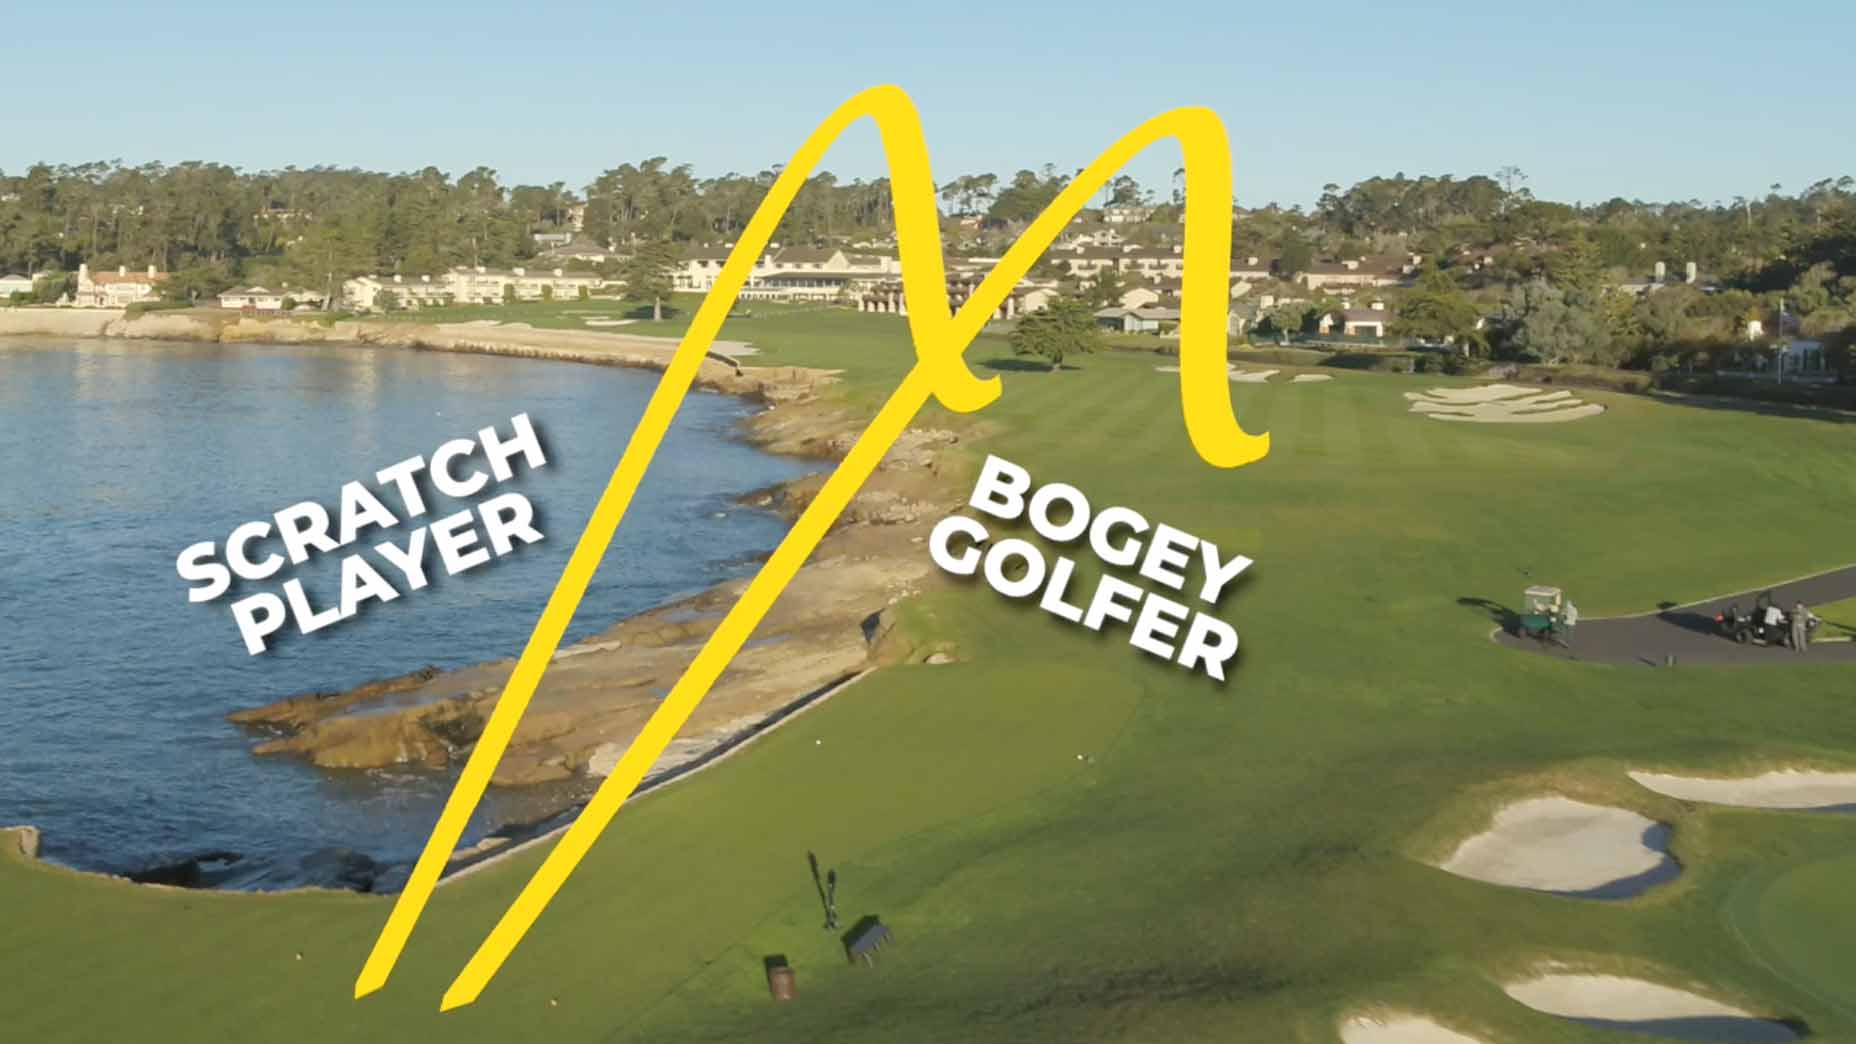 How a golf hole gets rated